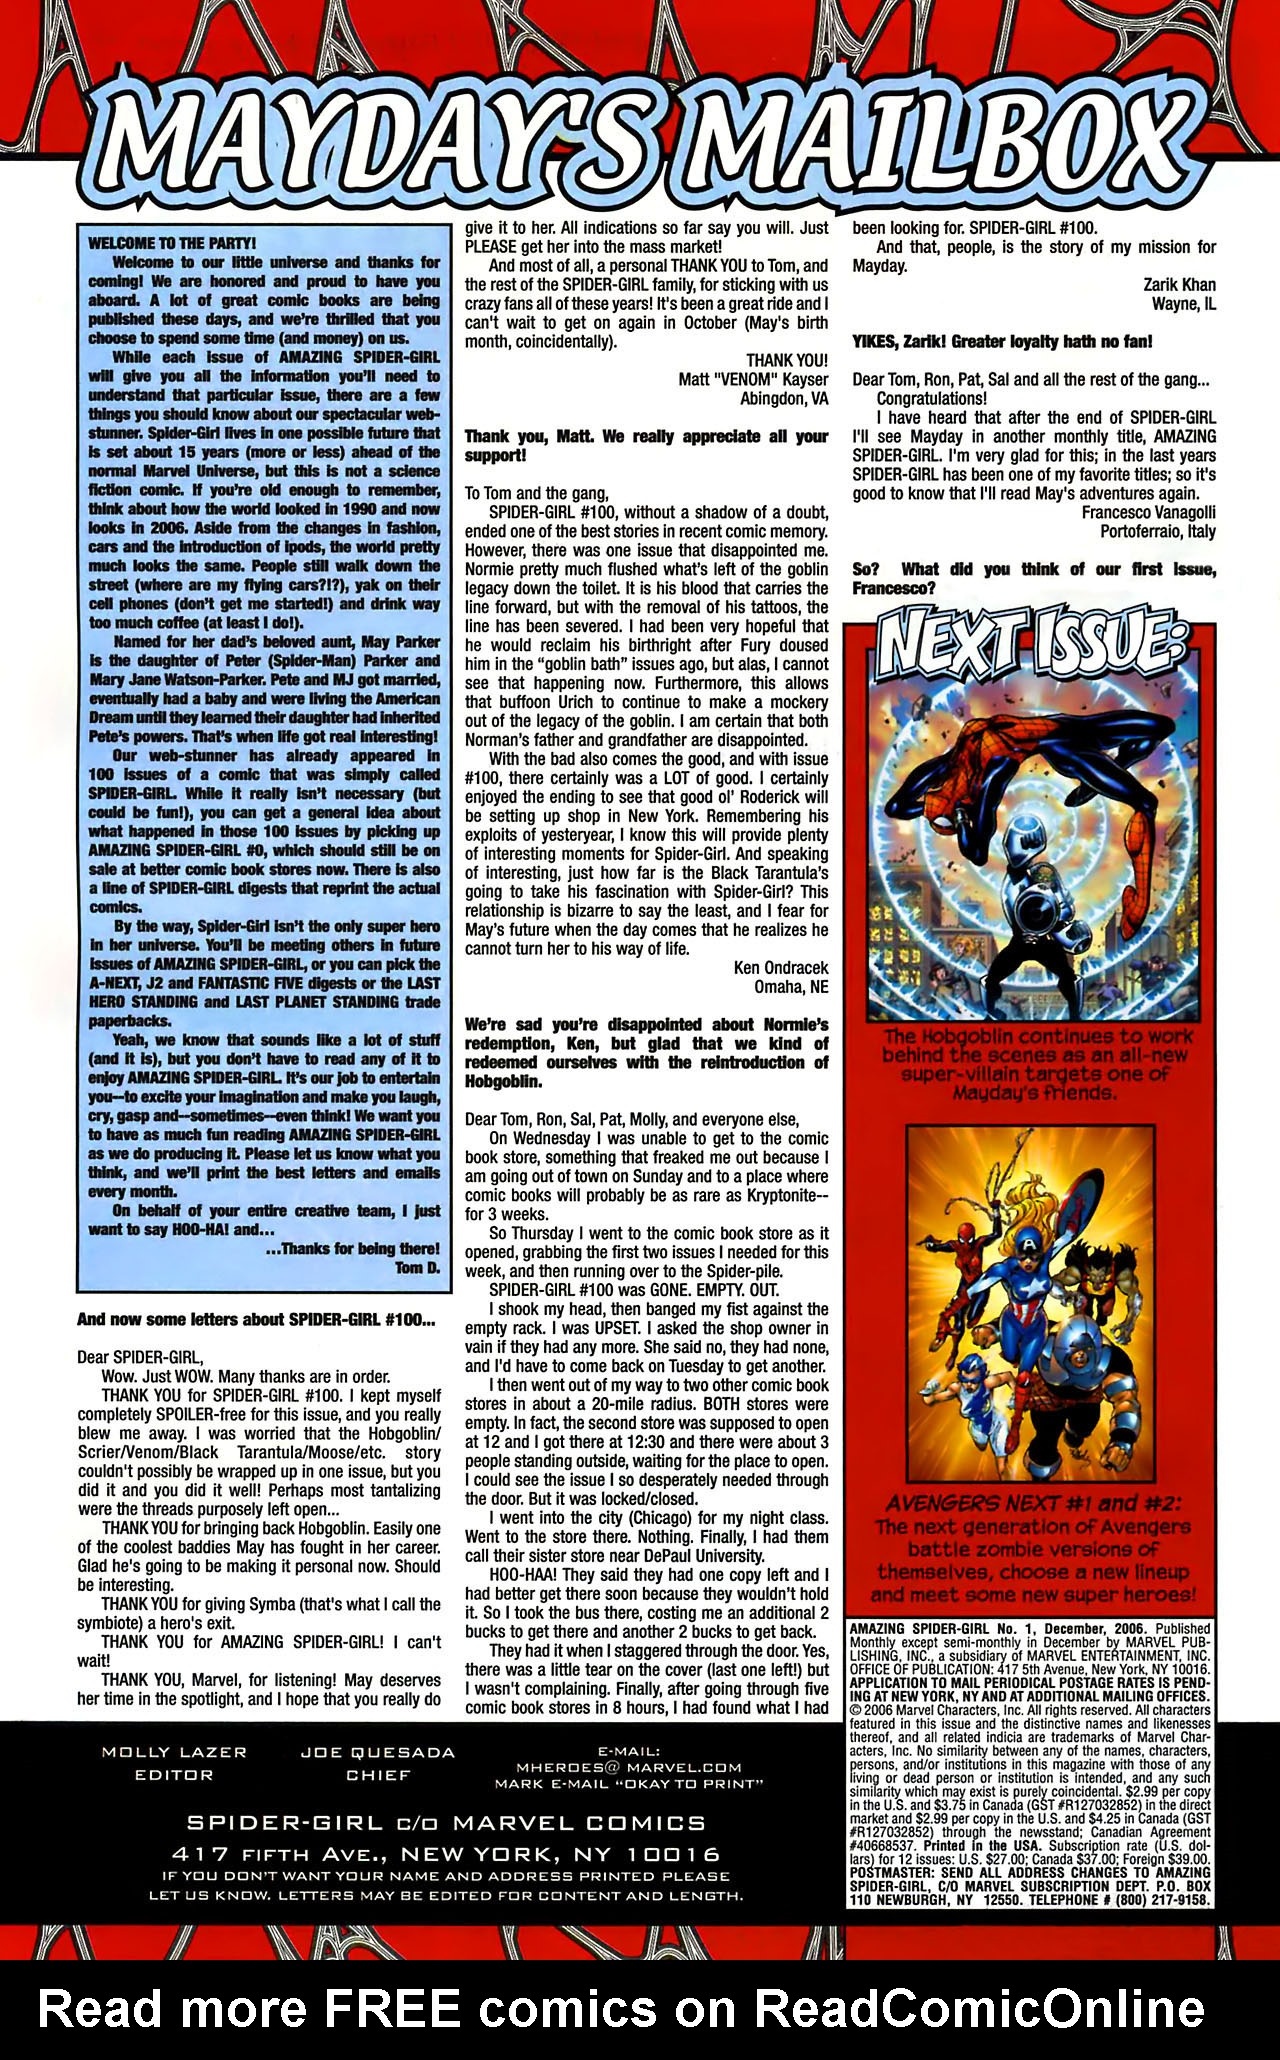 Read online Amazing Spider-Girl comic -  Issue #1 - 26